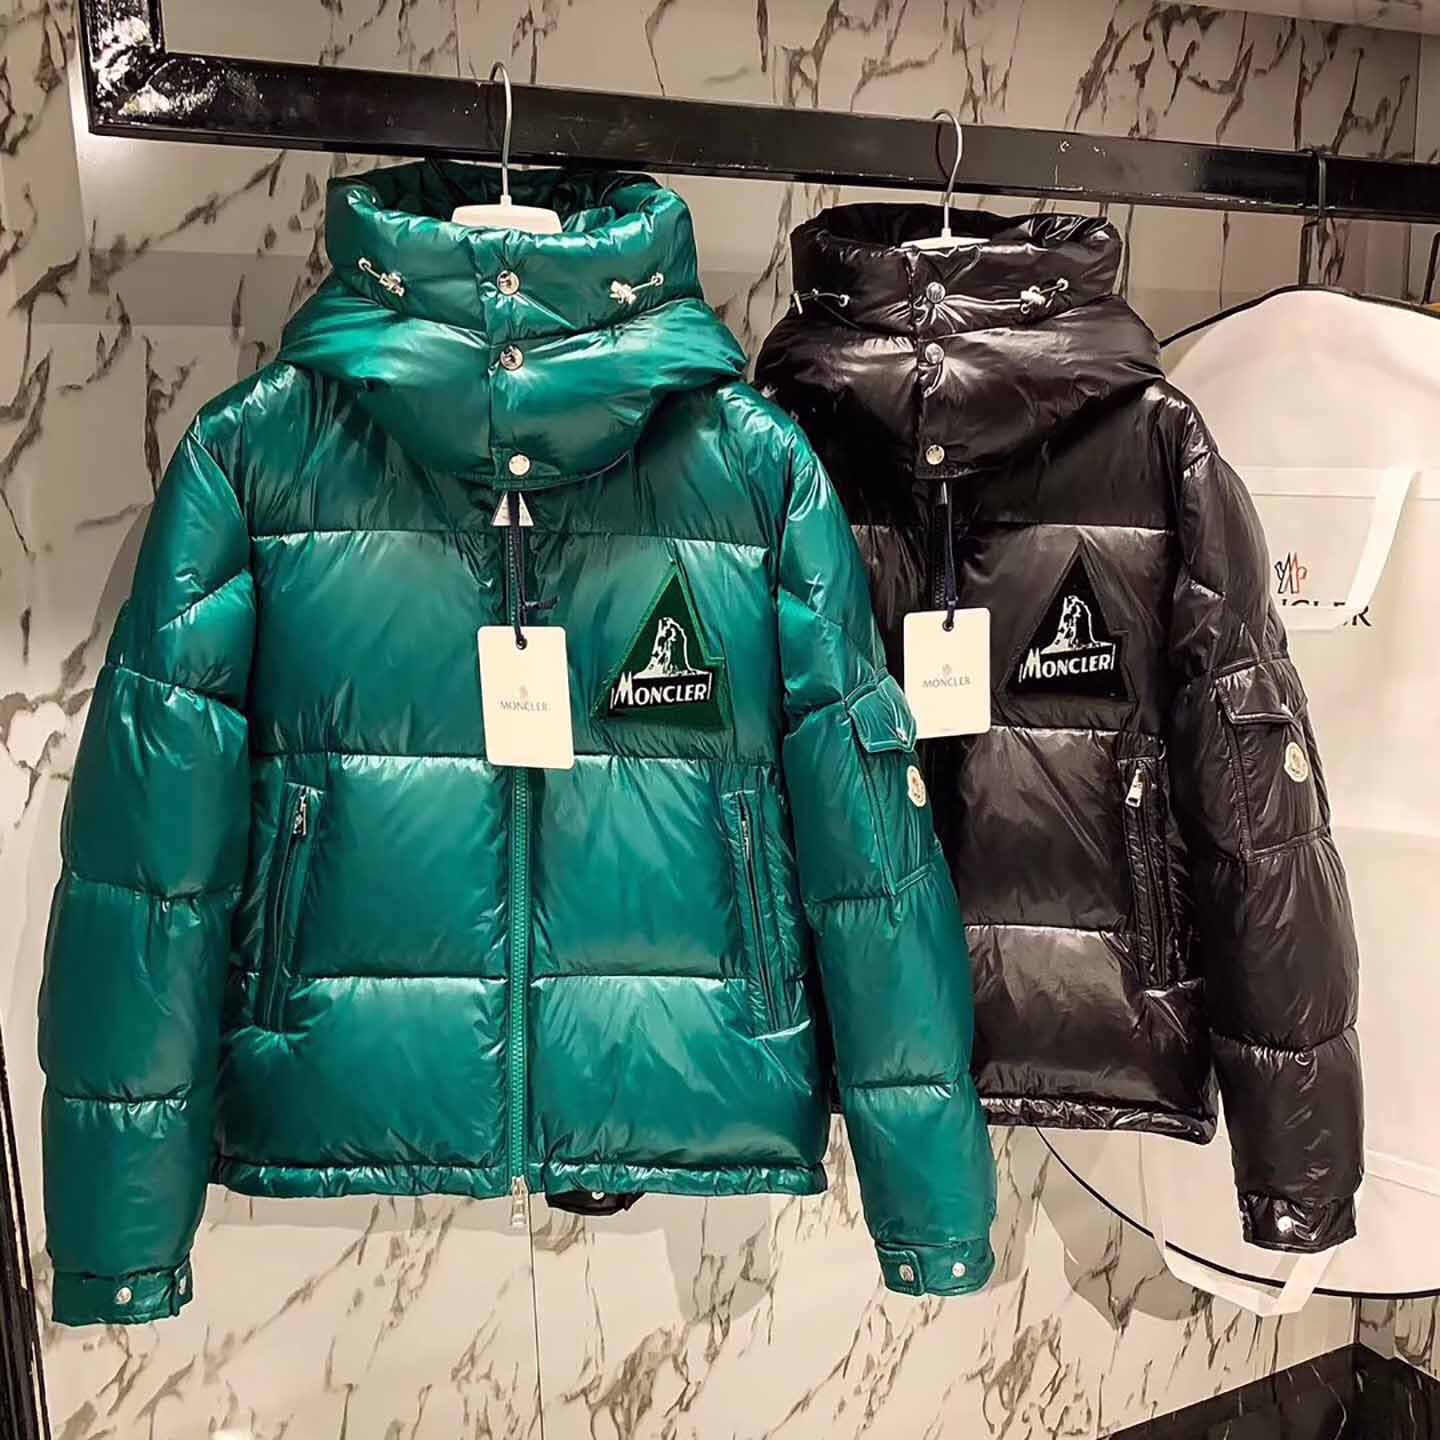 Moncler Down Jacket in Green - FashionBeast